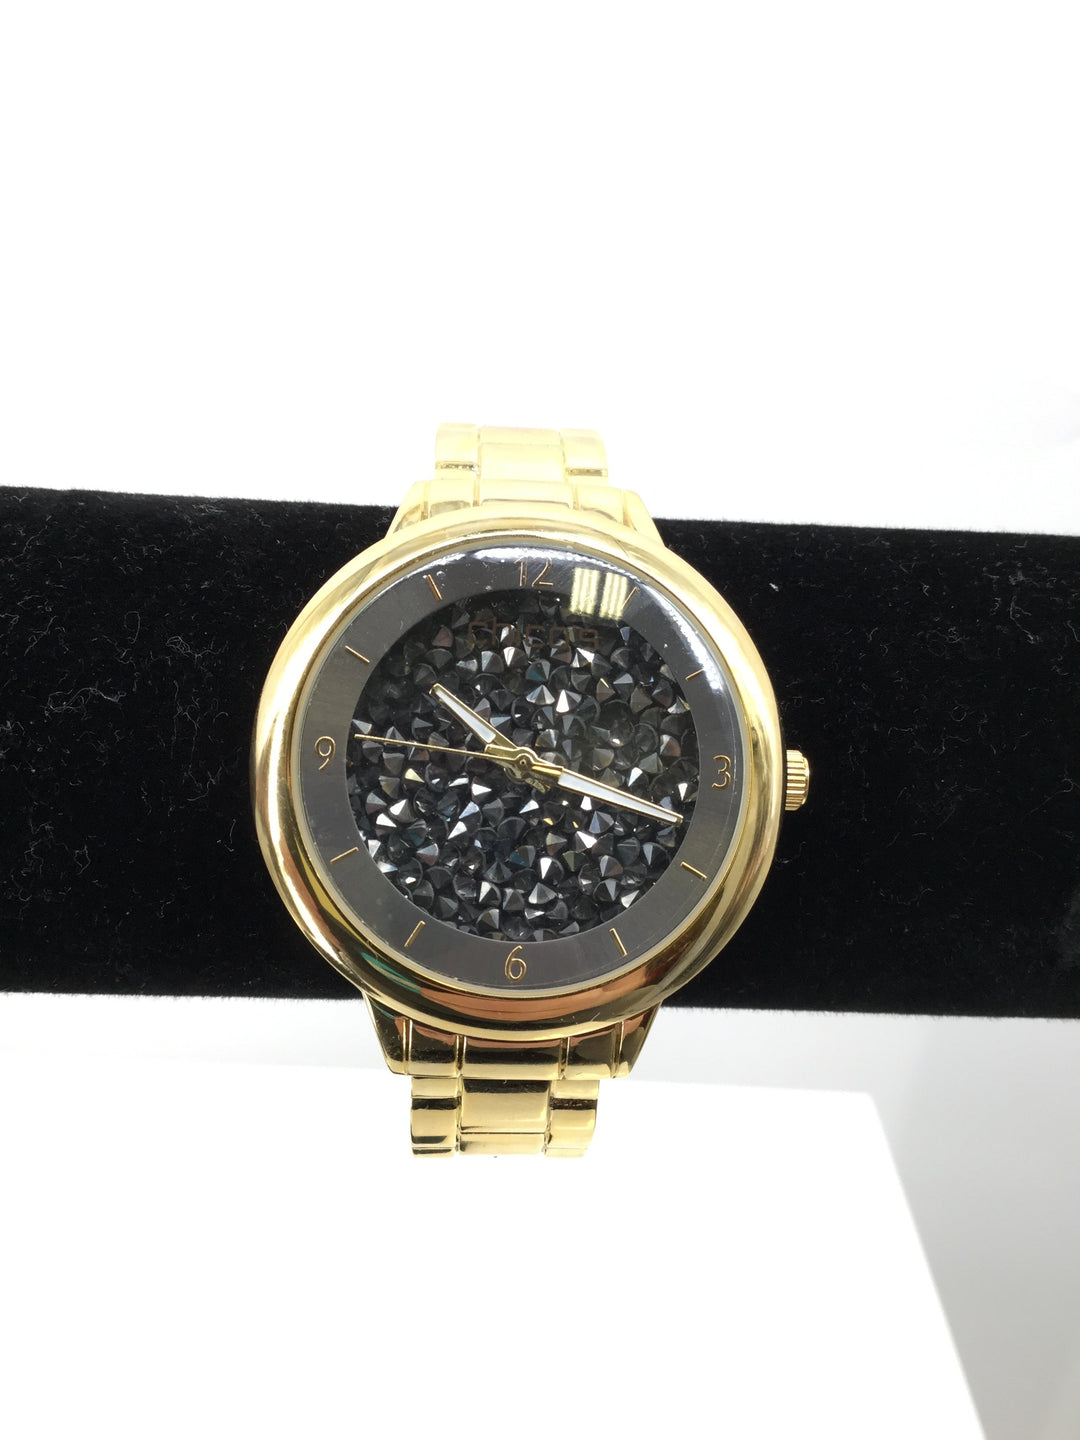 Chico's watch - <P>NEW! GOLD WATCH WITH BLACK CRYSTALS IN THE FACE OF THE WATCH. STAINLESS STEEL BACK AND WHITE AND GOLD CLOCK HANDS.</P>